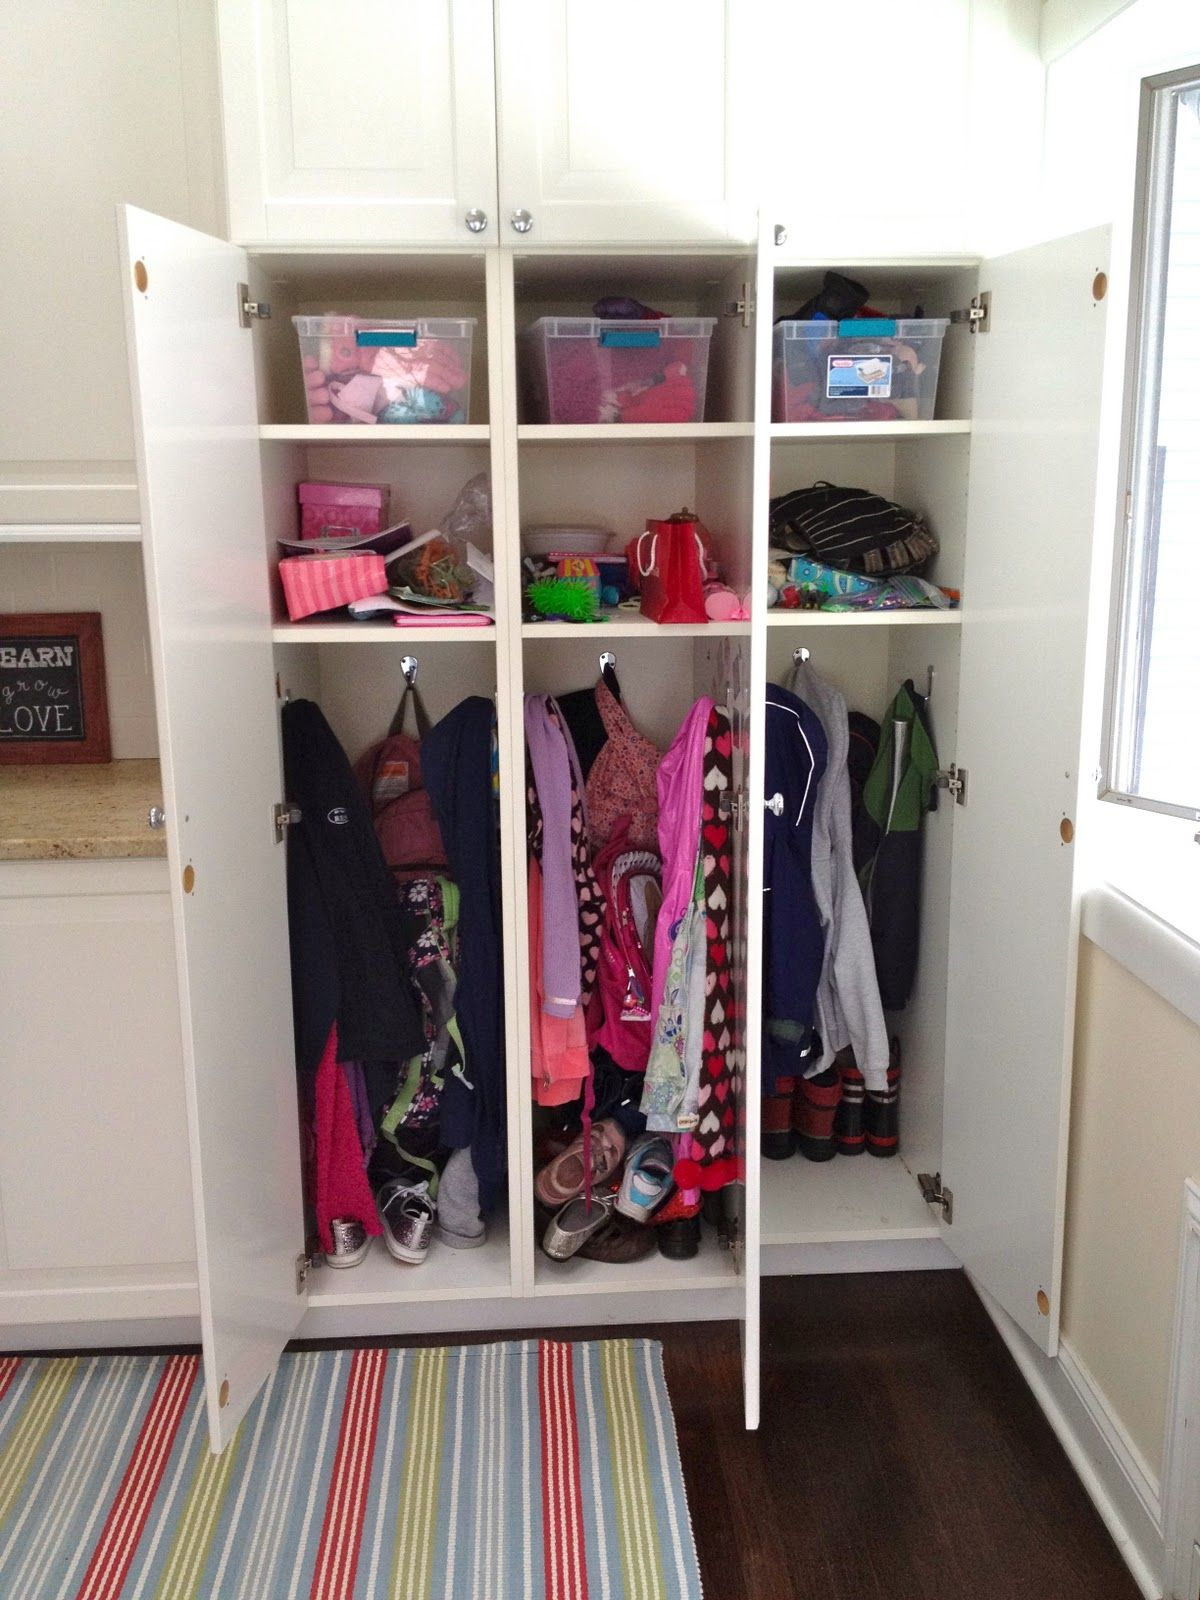 Chic Kids  Lockers for Kids Room   Lockers For Kids Room Storage. Ikea cabinets      Locker style for kids stuff   Playroom remodel